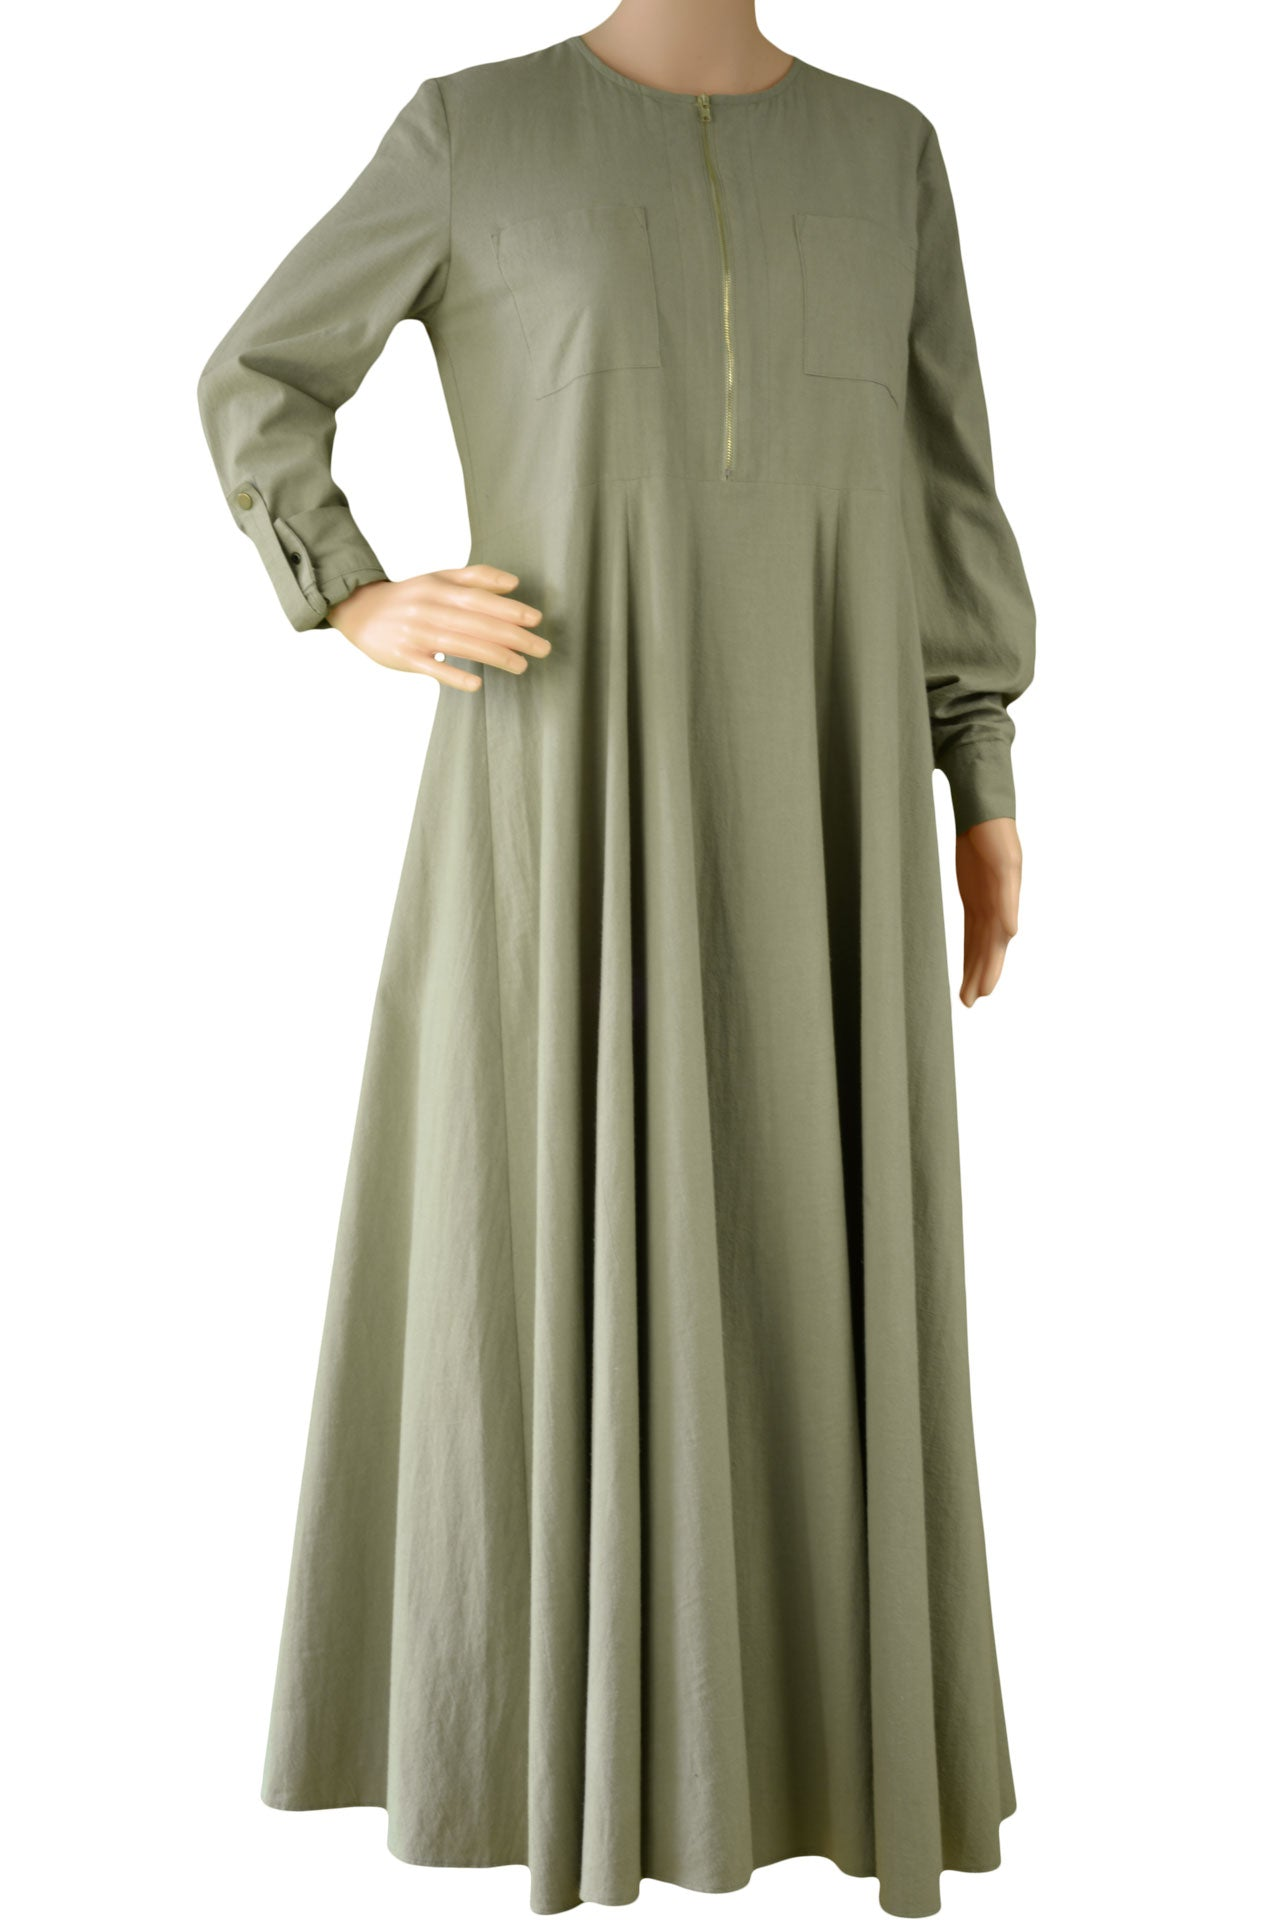 Earthy Rugged Green Abaya - Zadaru | Modest Abaya, Jilbab, Hijab Online Shopping